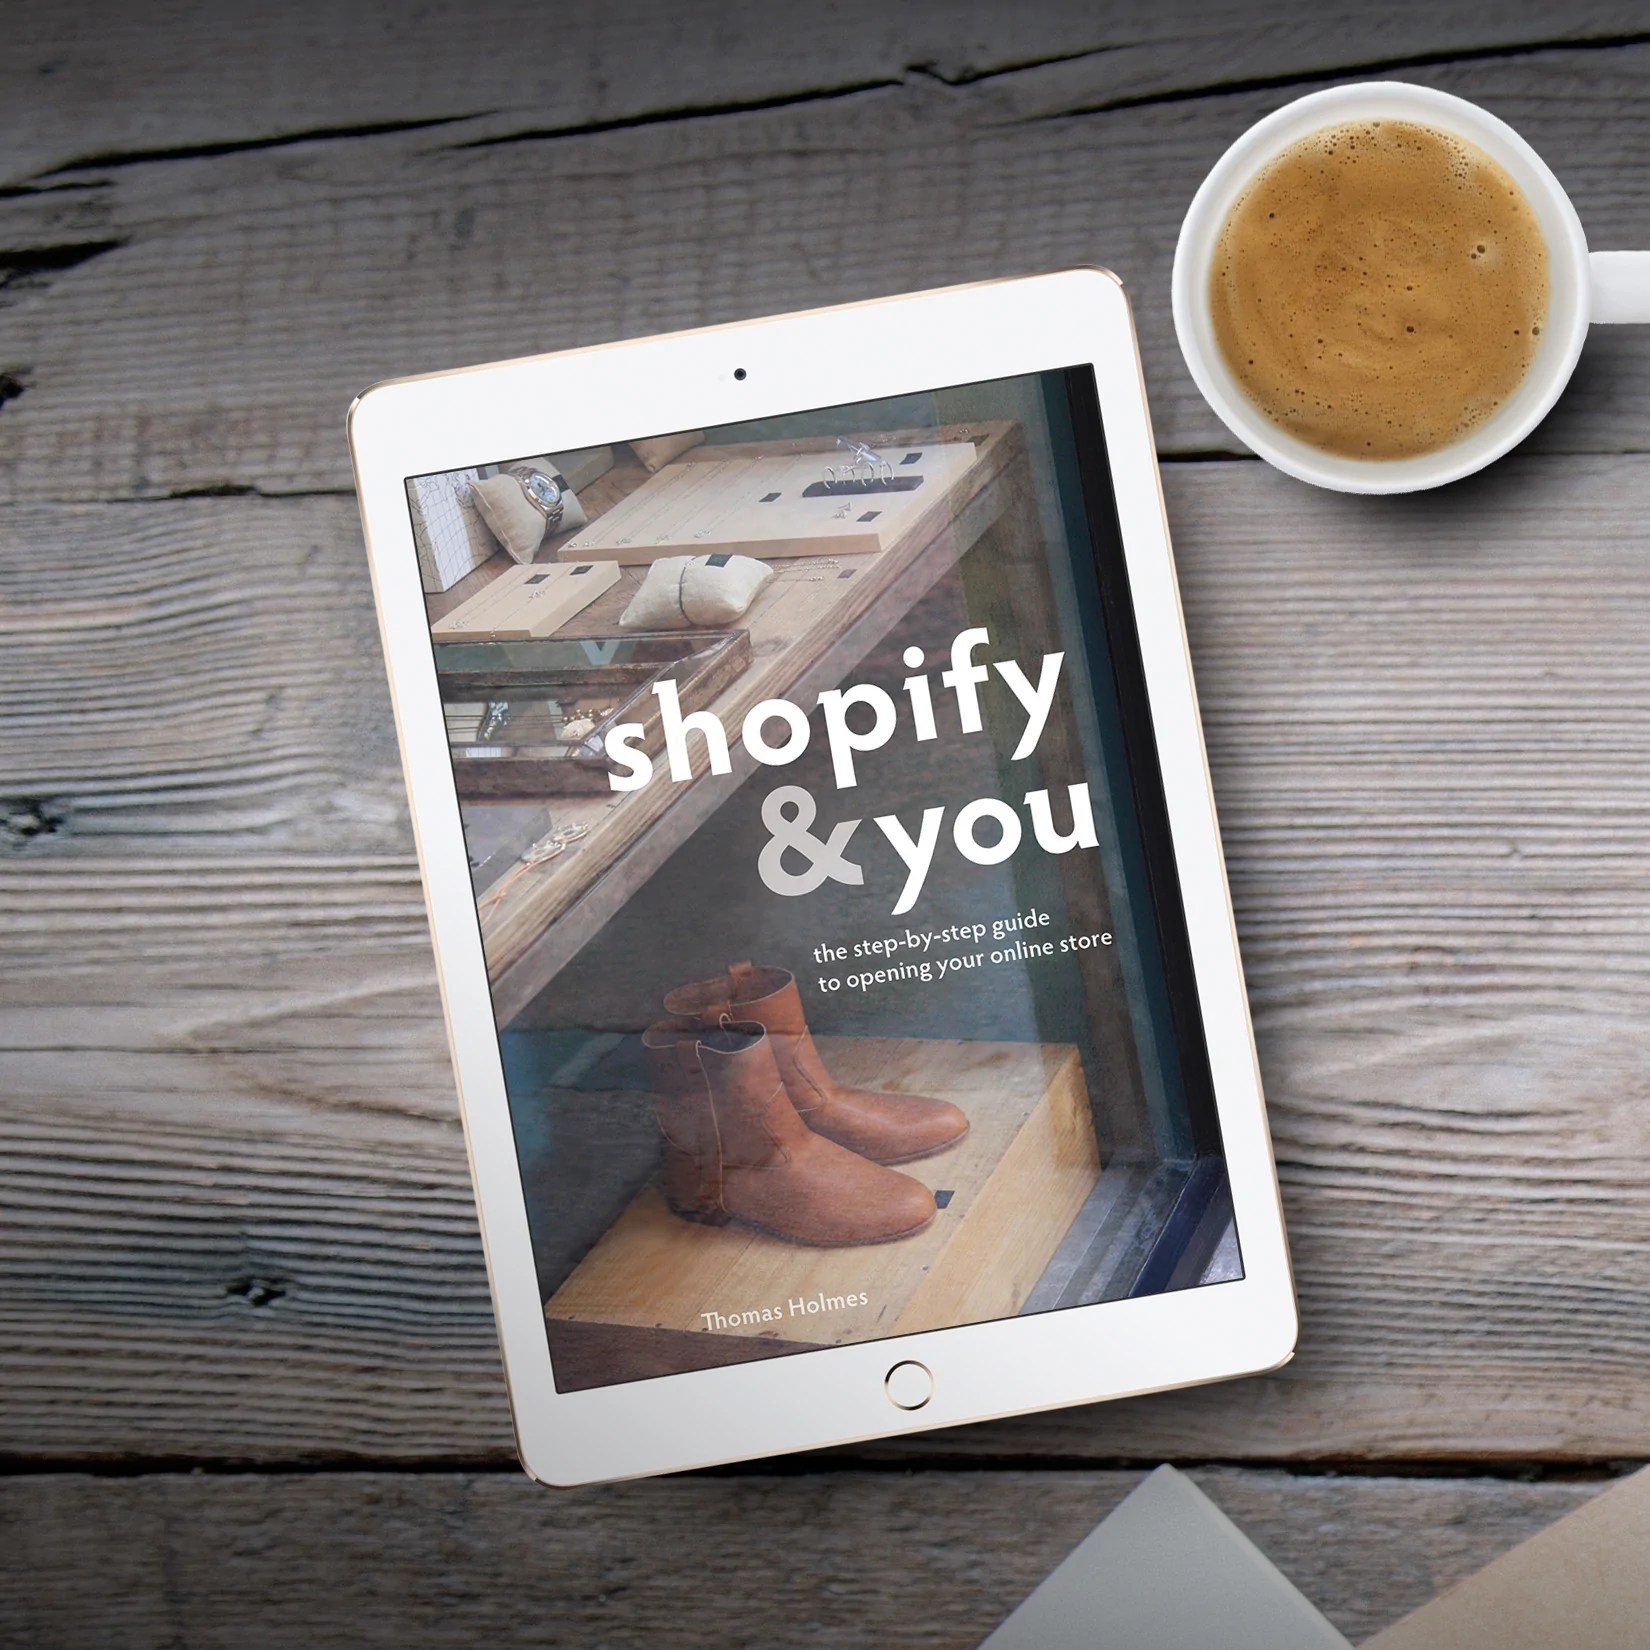 hight resolution of  array shopify u0026 you ebook rh shopifyandyou